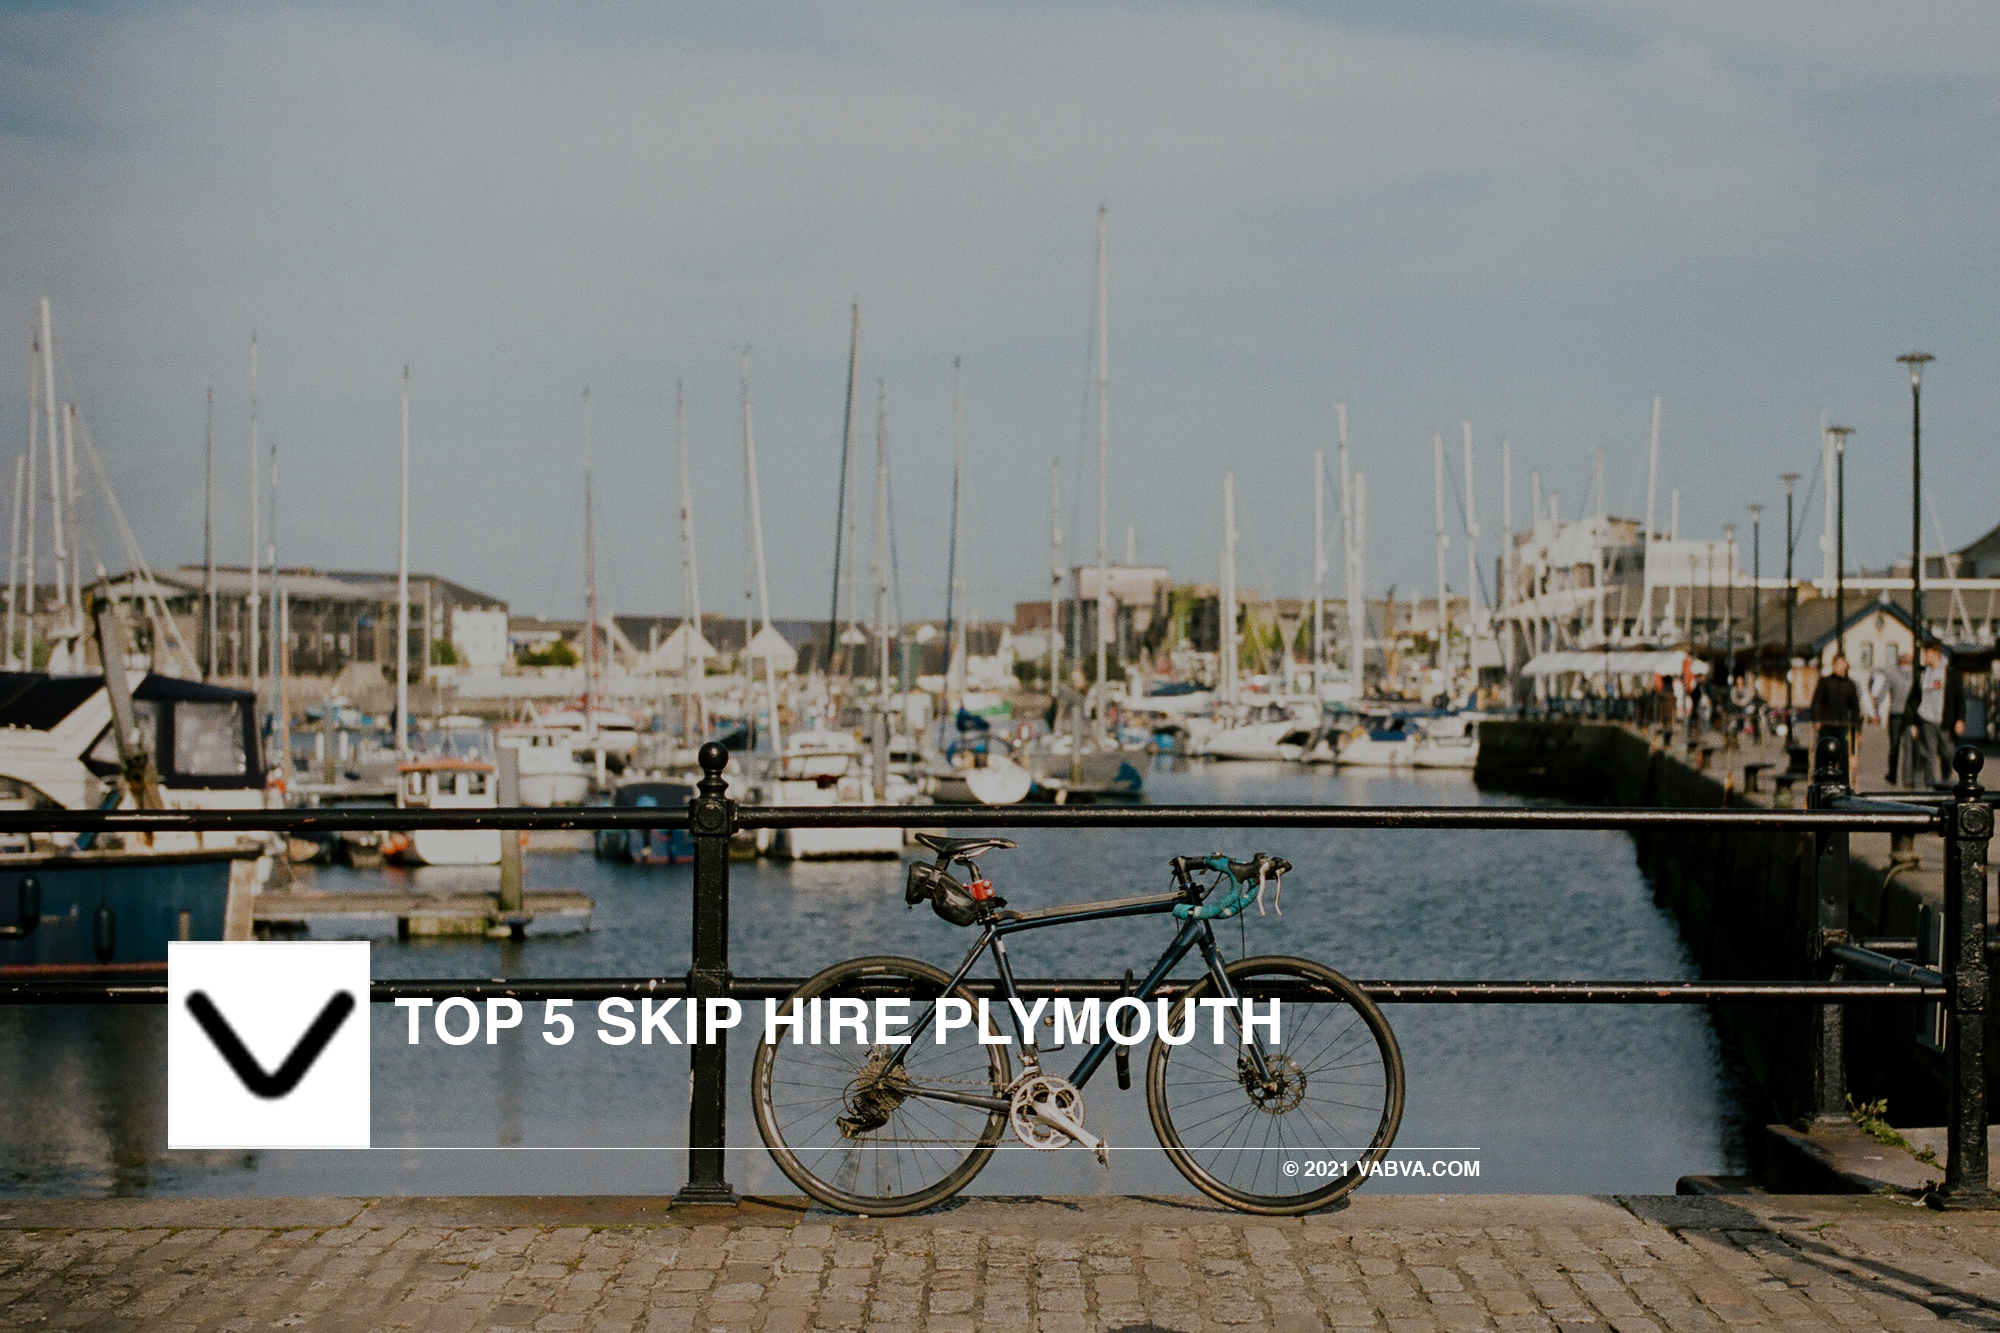 Top 5 skip hire Plymouth